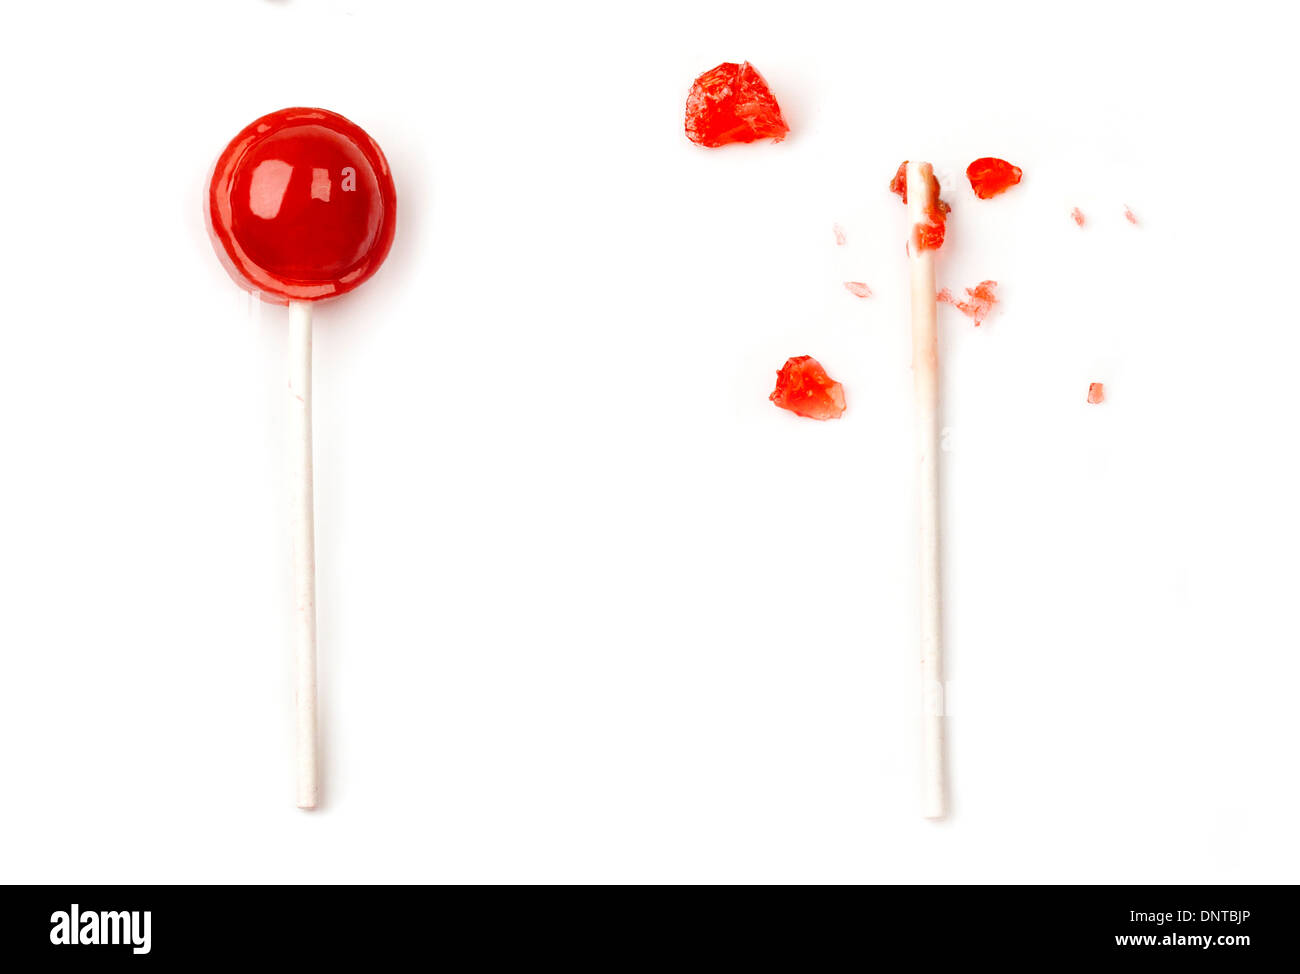 Comido Tootsie Roll pop Foto de stock